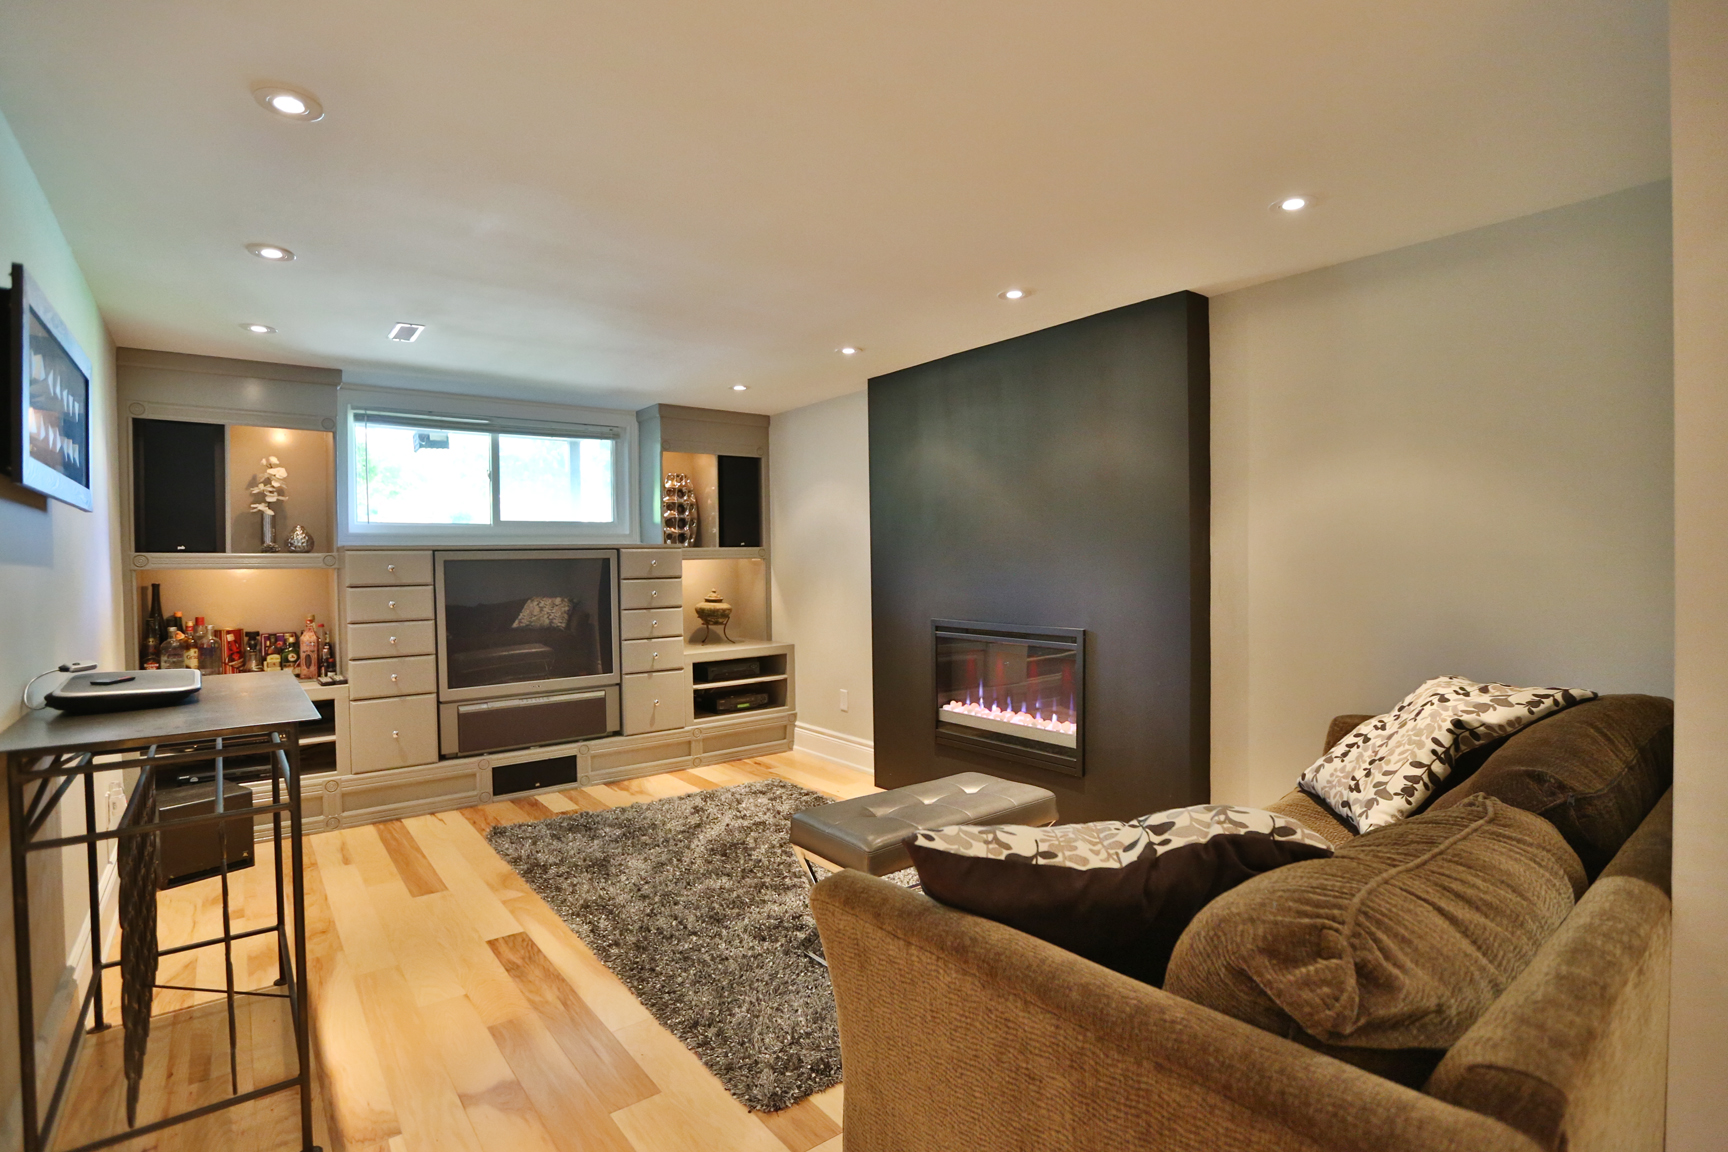 Cabinet Lighting Electric Fire plus Pot Lights & SERVING BURLINGTON AND SURROUNDING AREAS | Great service great staff